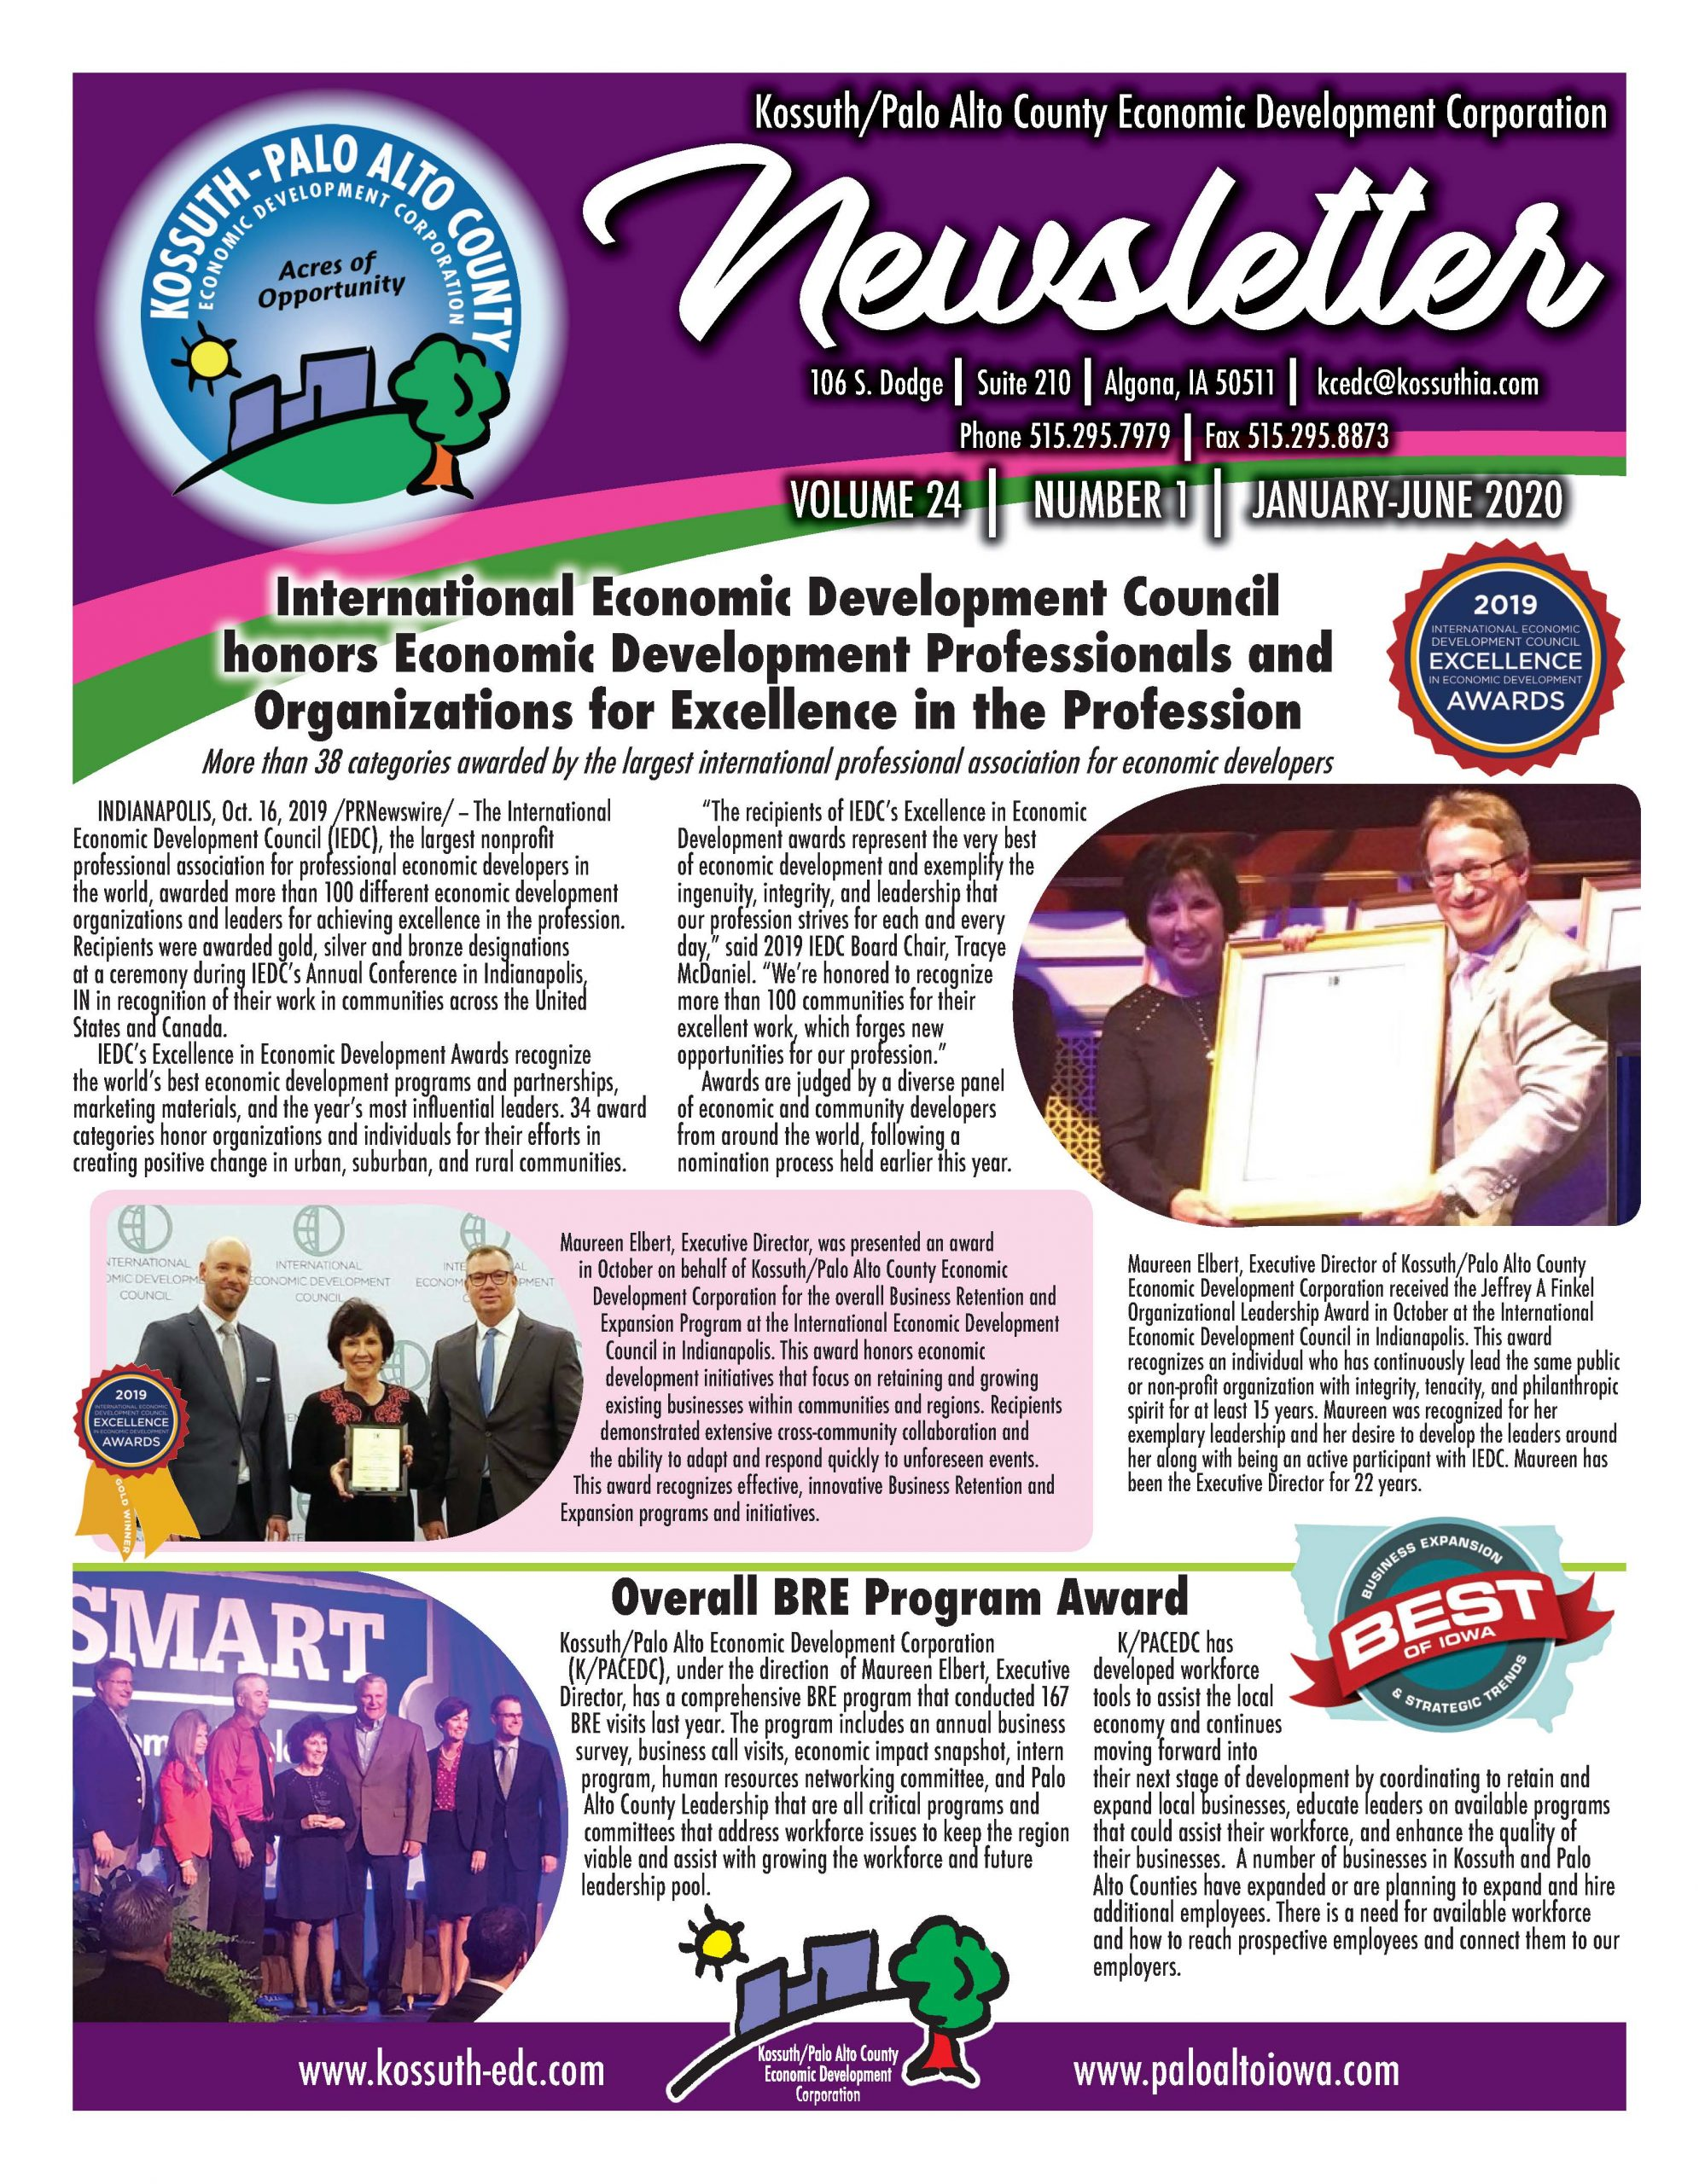 KCEDC Jan June 2020 Newsletter PAGE 1 IMAGE.WEBSITE